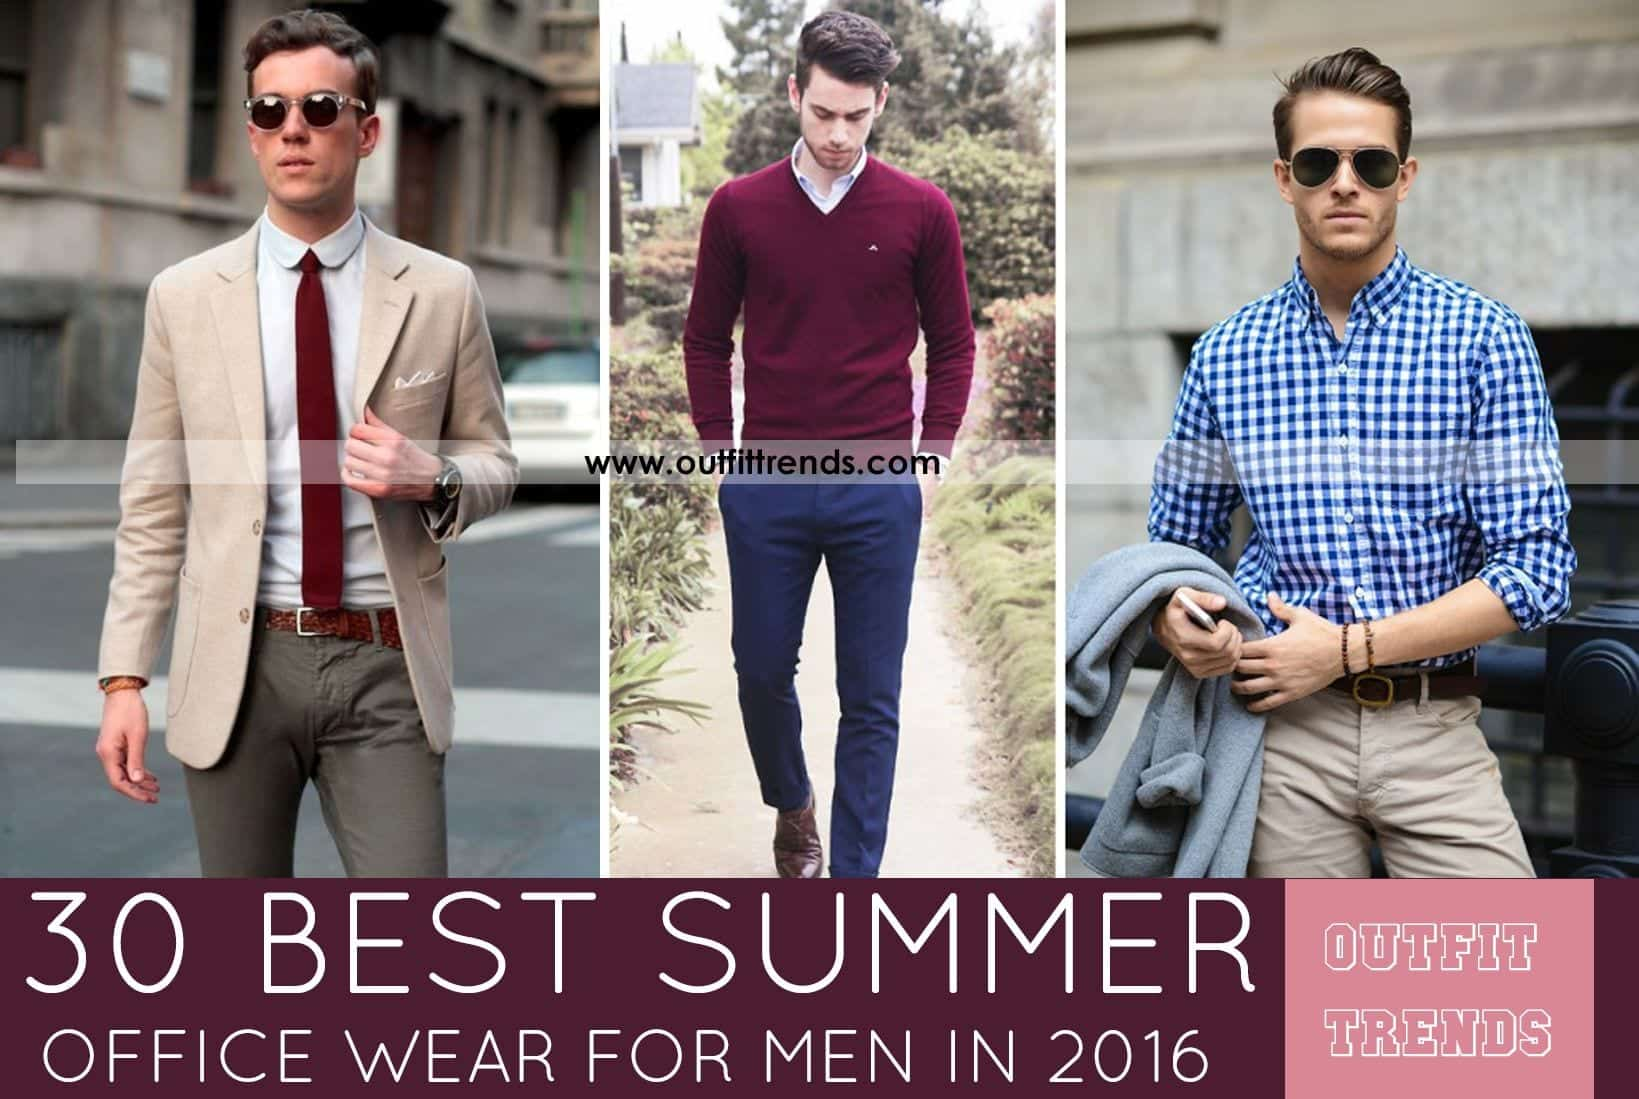 ce8044e4437f Men Summer Office wear-18 Best Workwear Outfits for Warm Months